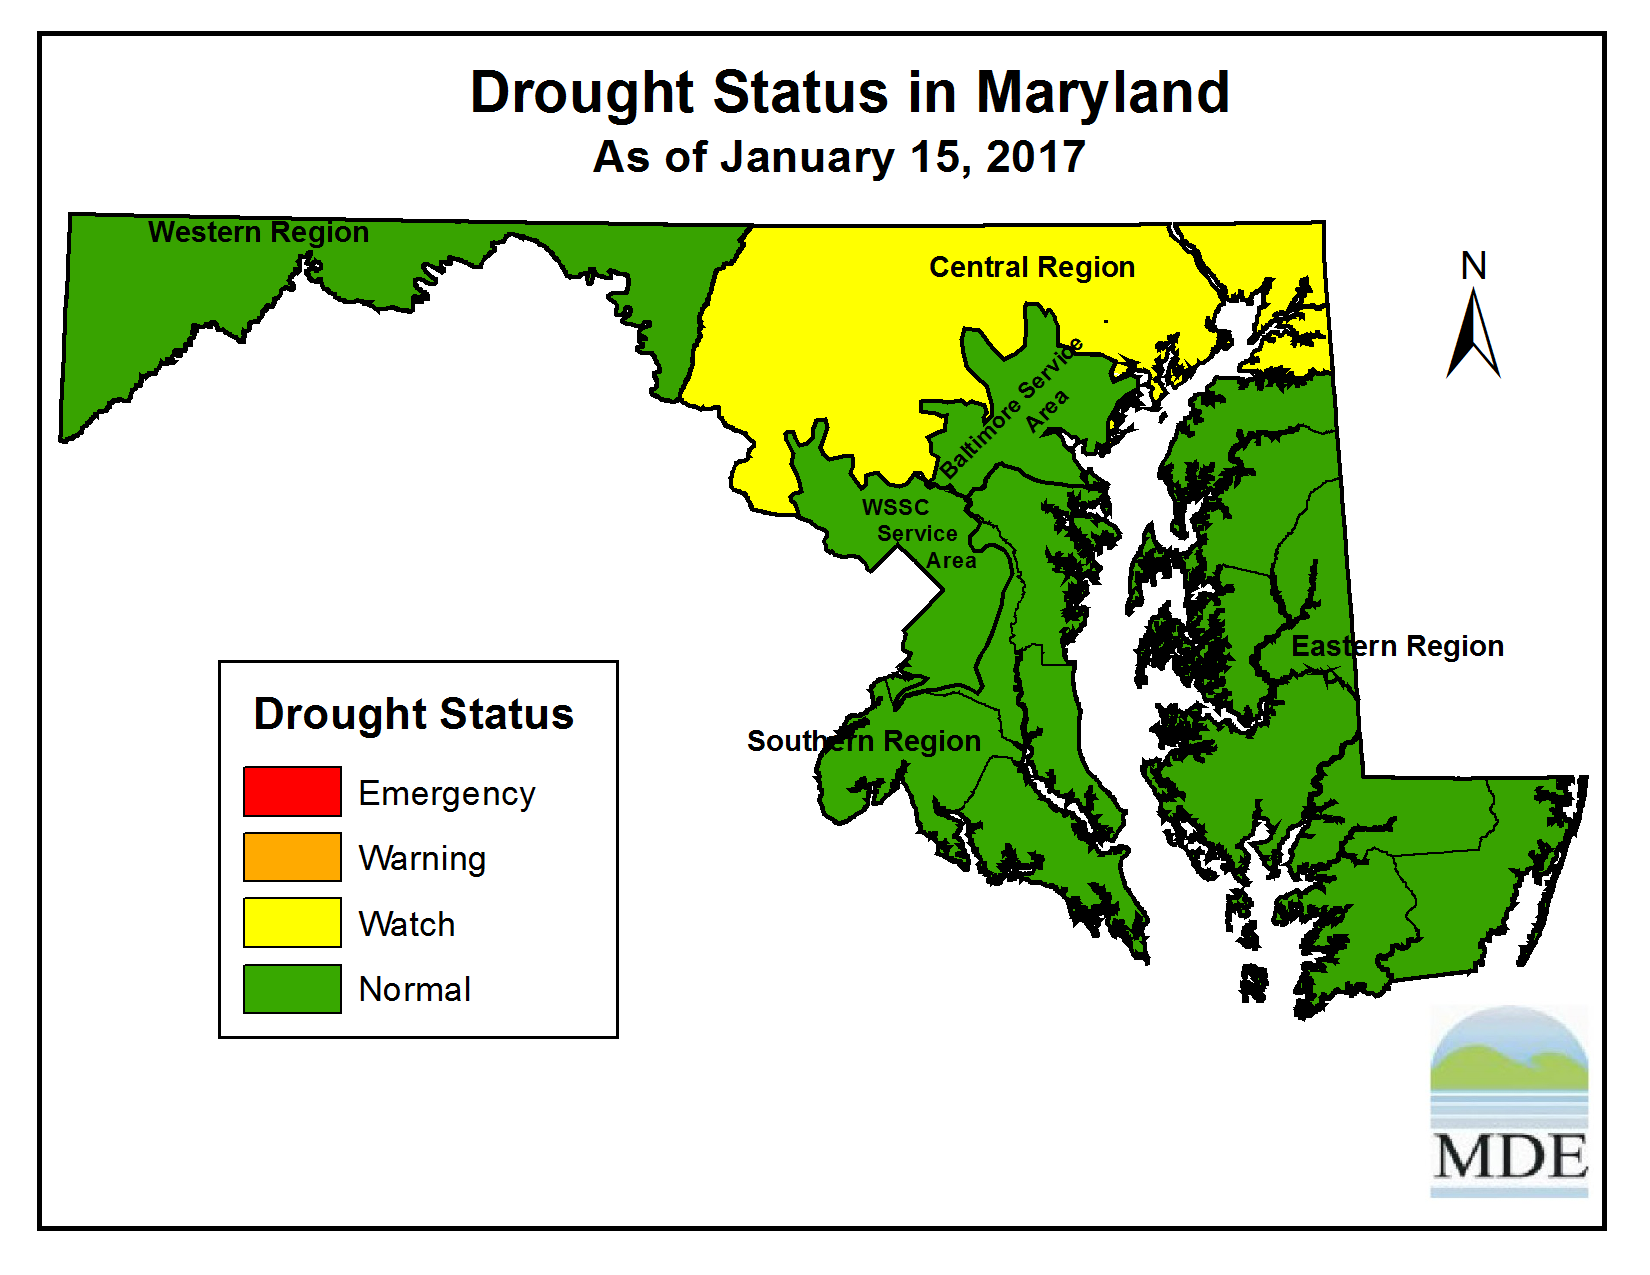 Drought Status as of January 15, 2017